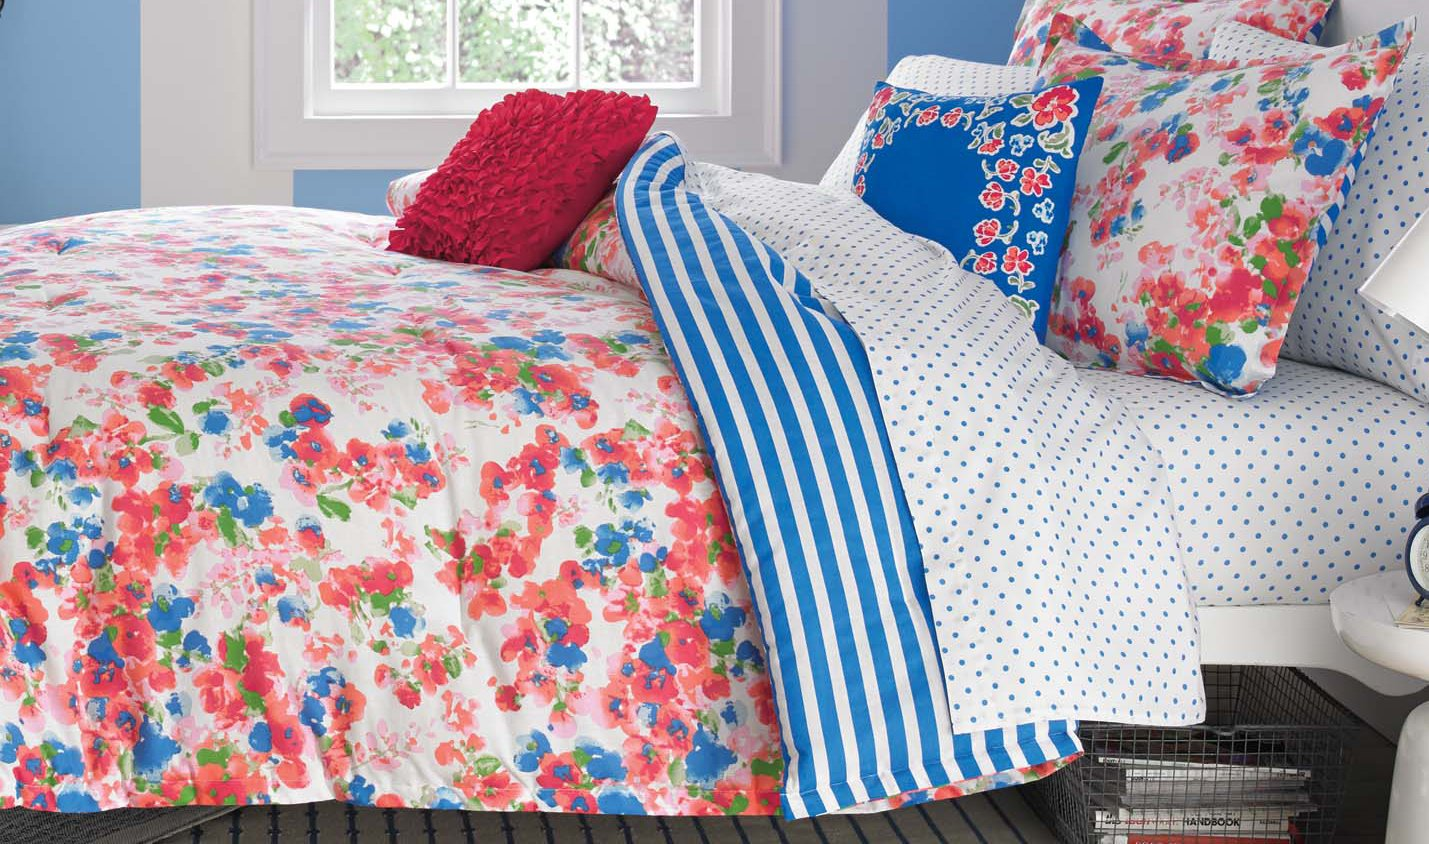 Teen Vogue Rose Posie Comforter Set, Full/Queen